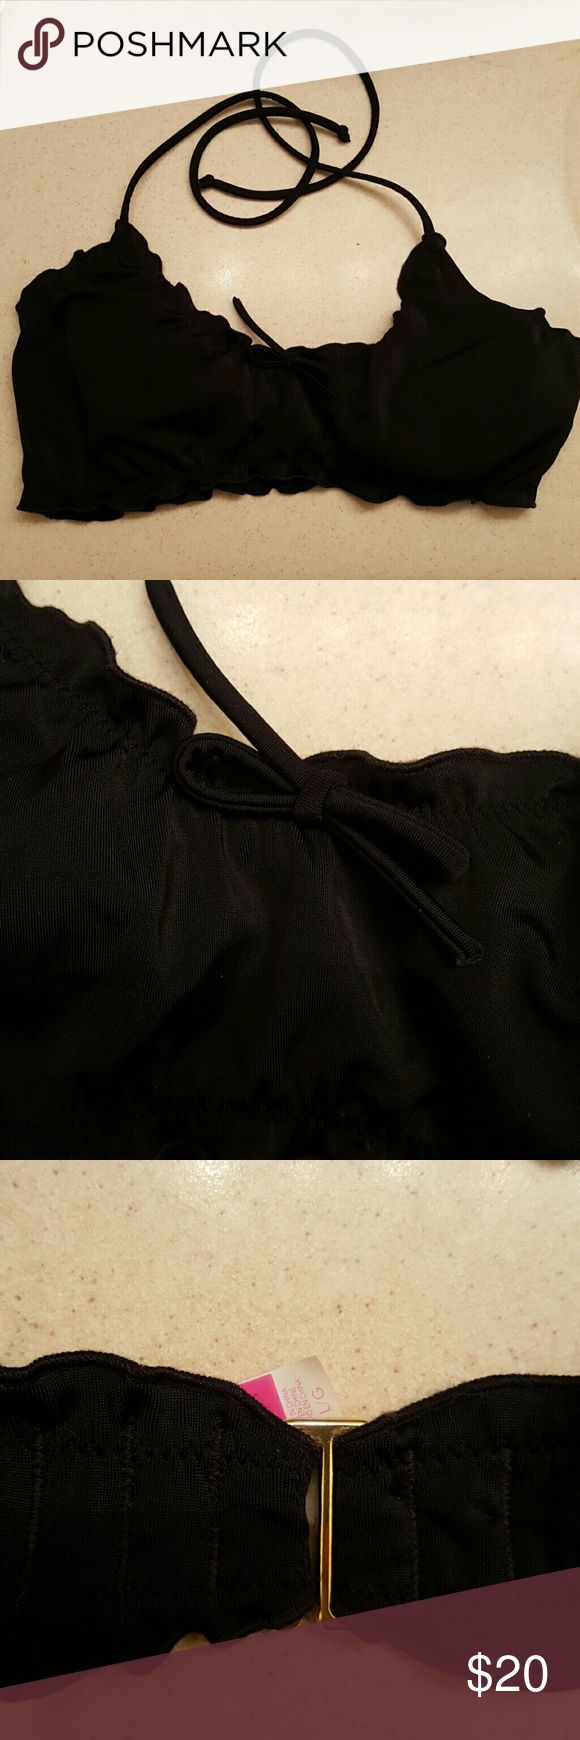 Black Victoria Secret bikini top Very cute vs bikini top. Bought off here, didn't fit me! Gently used, no signs of wear. Victoria's Secret Swim Bikinis